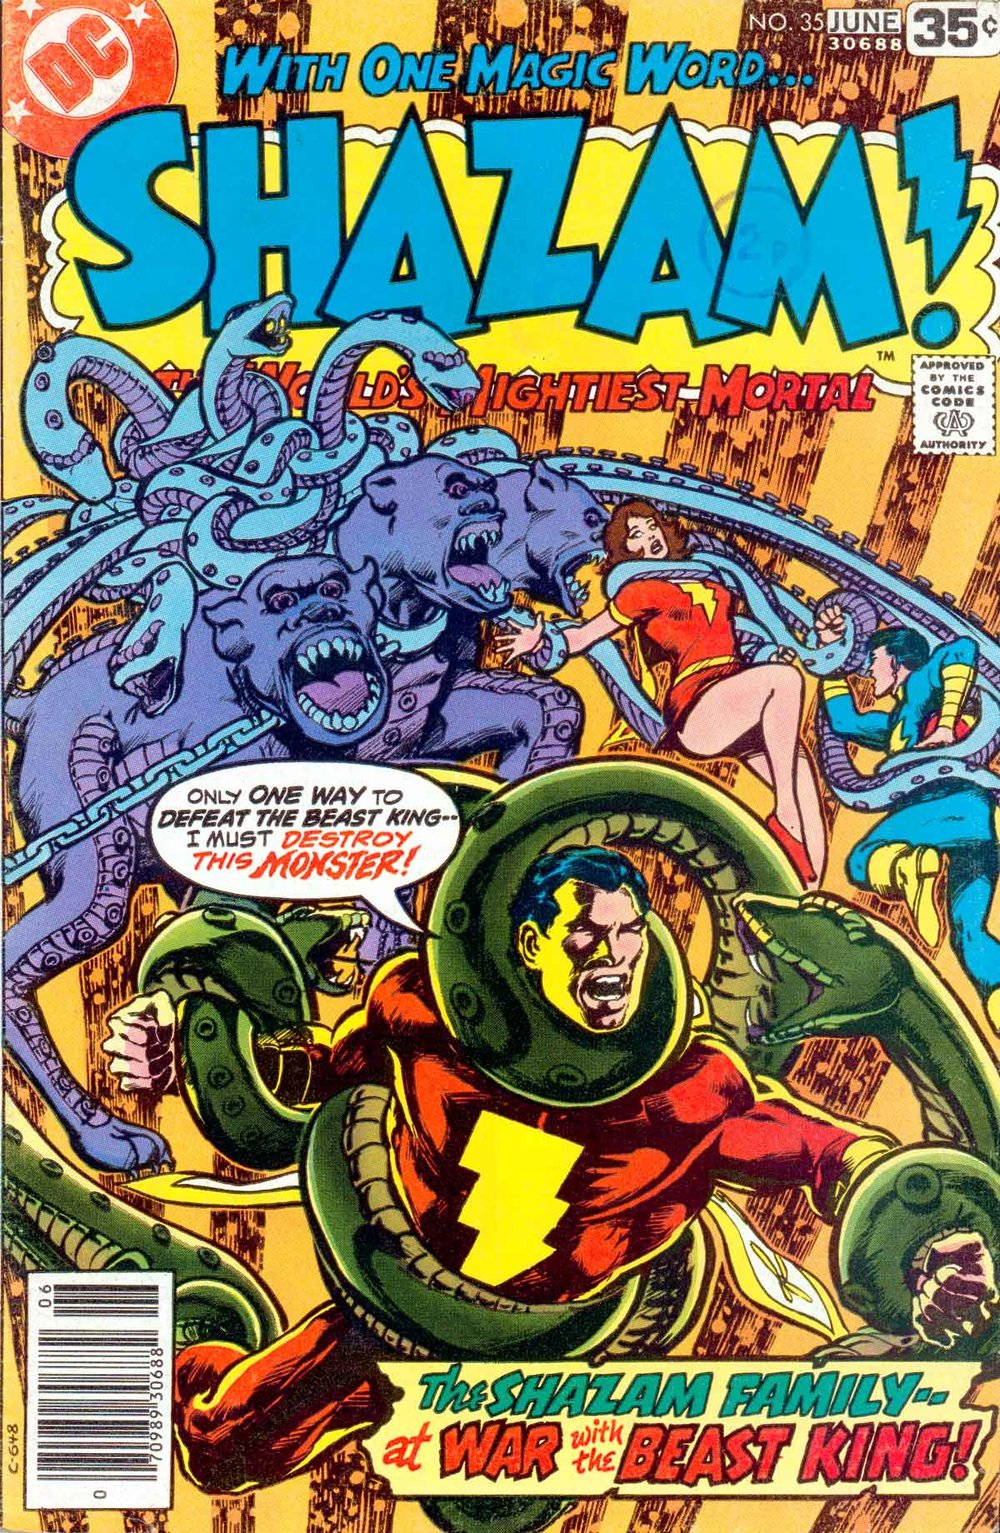 Shazam (1973) #35, cover by Mike Nasser.